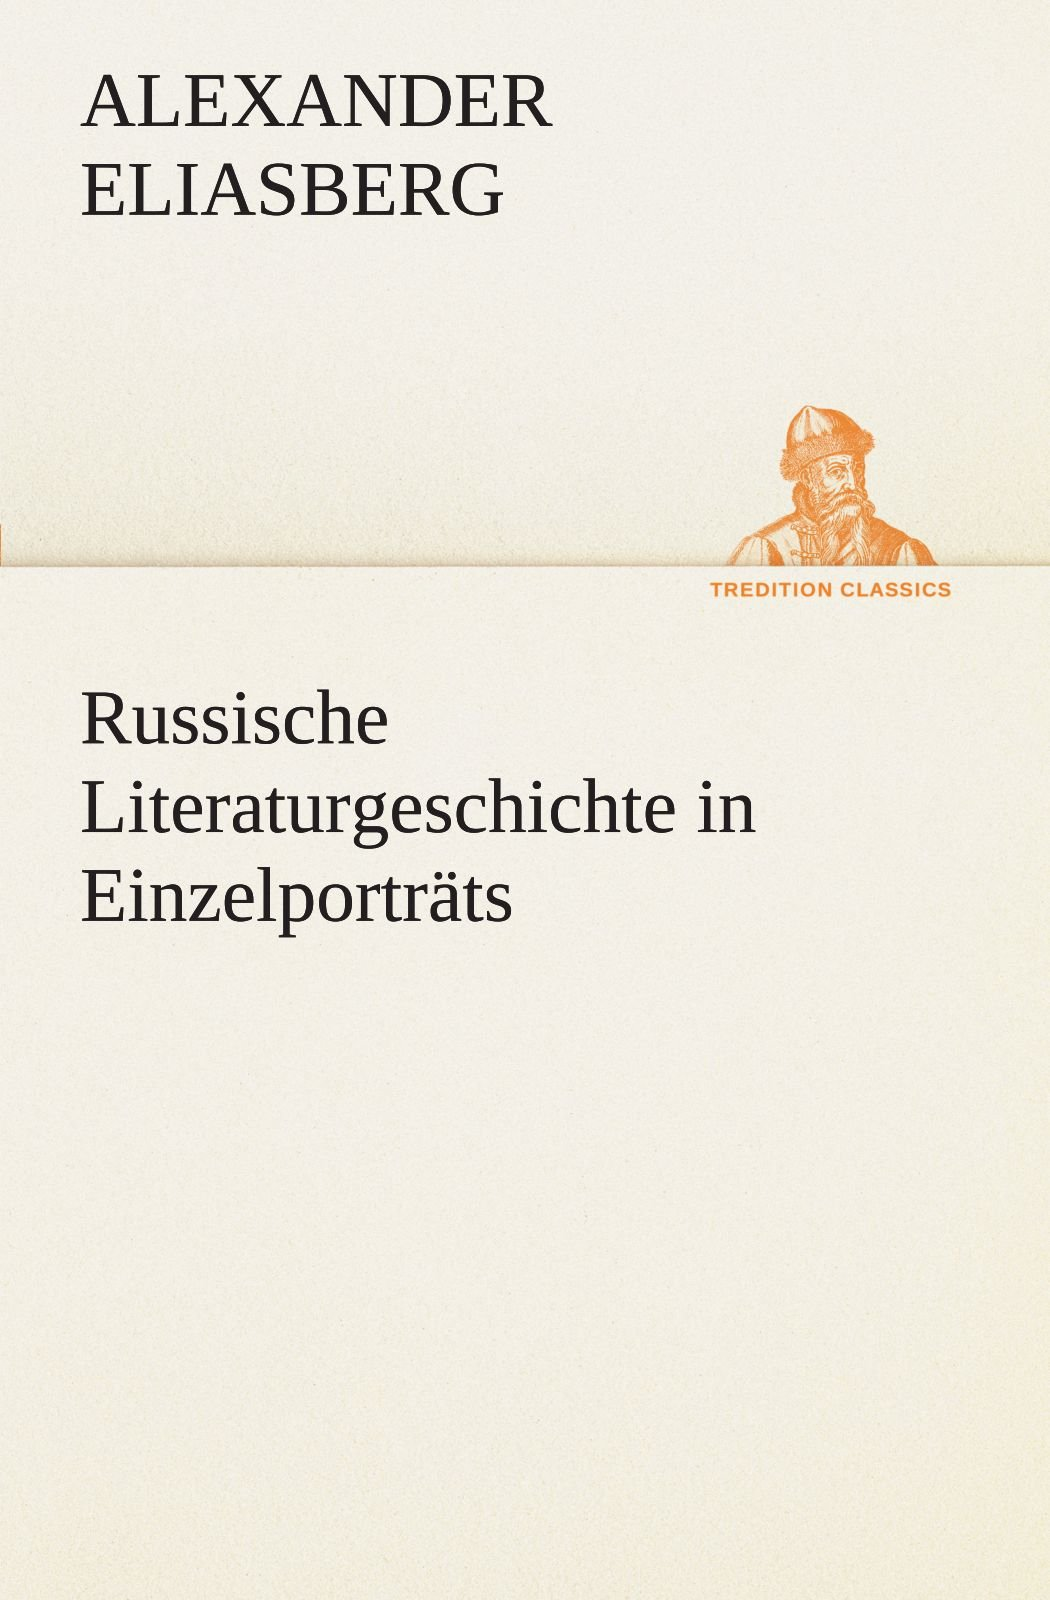 Russische Literaturgeschichte in Einzelporträts (TREDITION CLASSICS) (German Edition) ebook